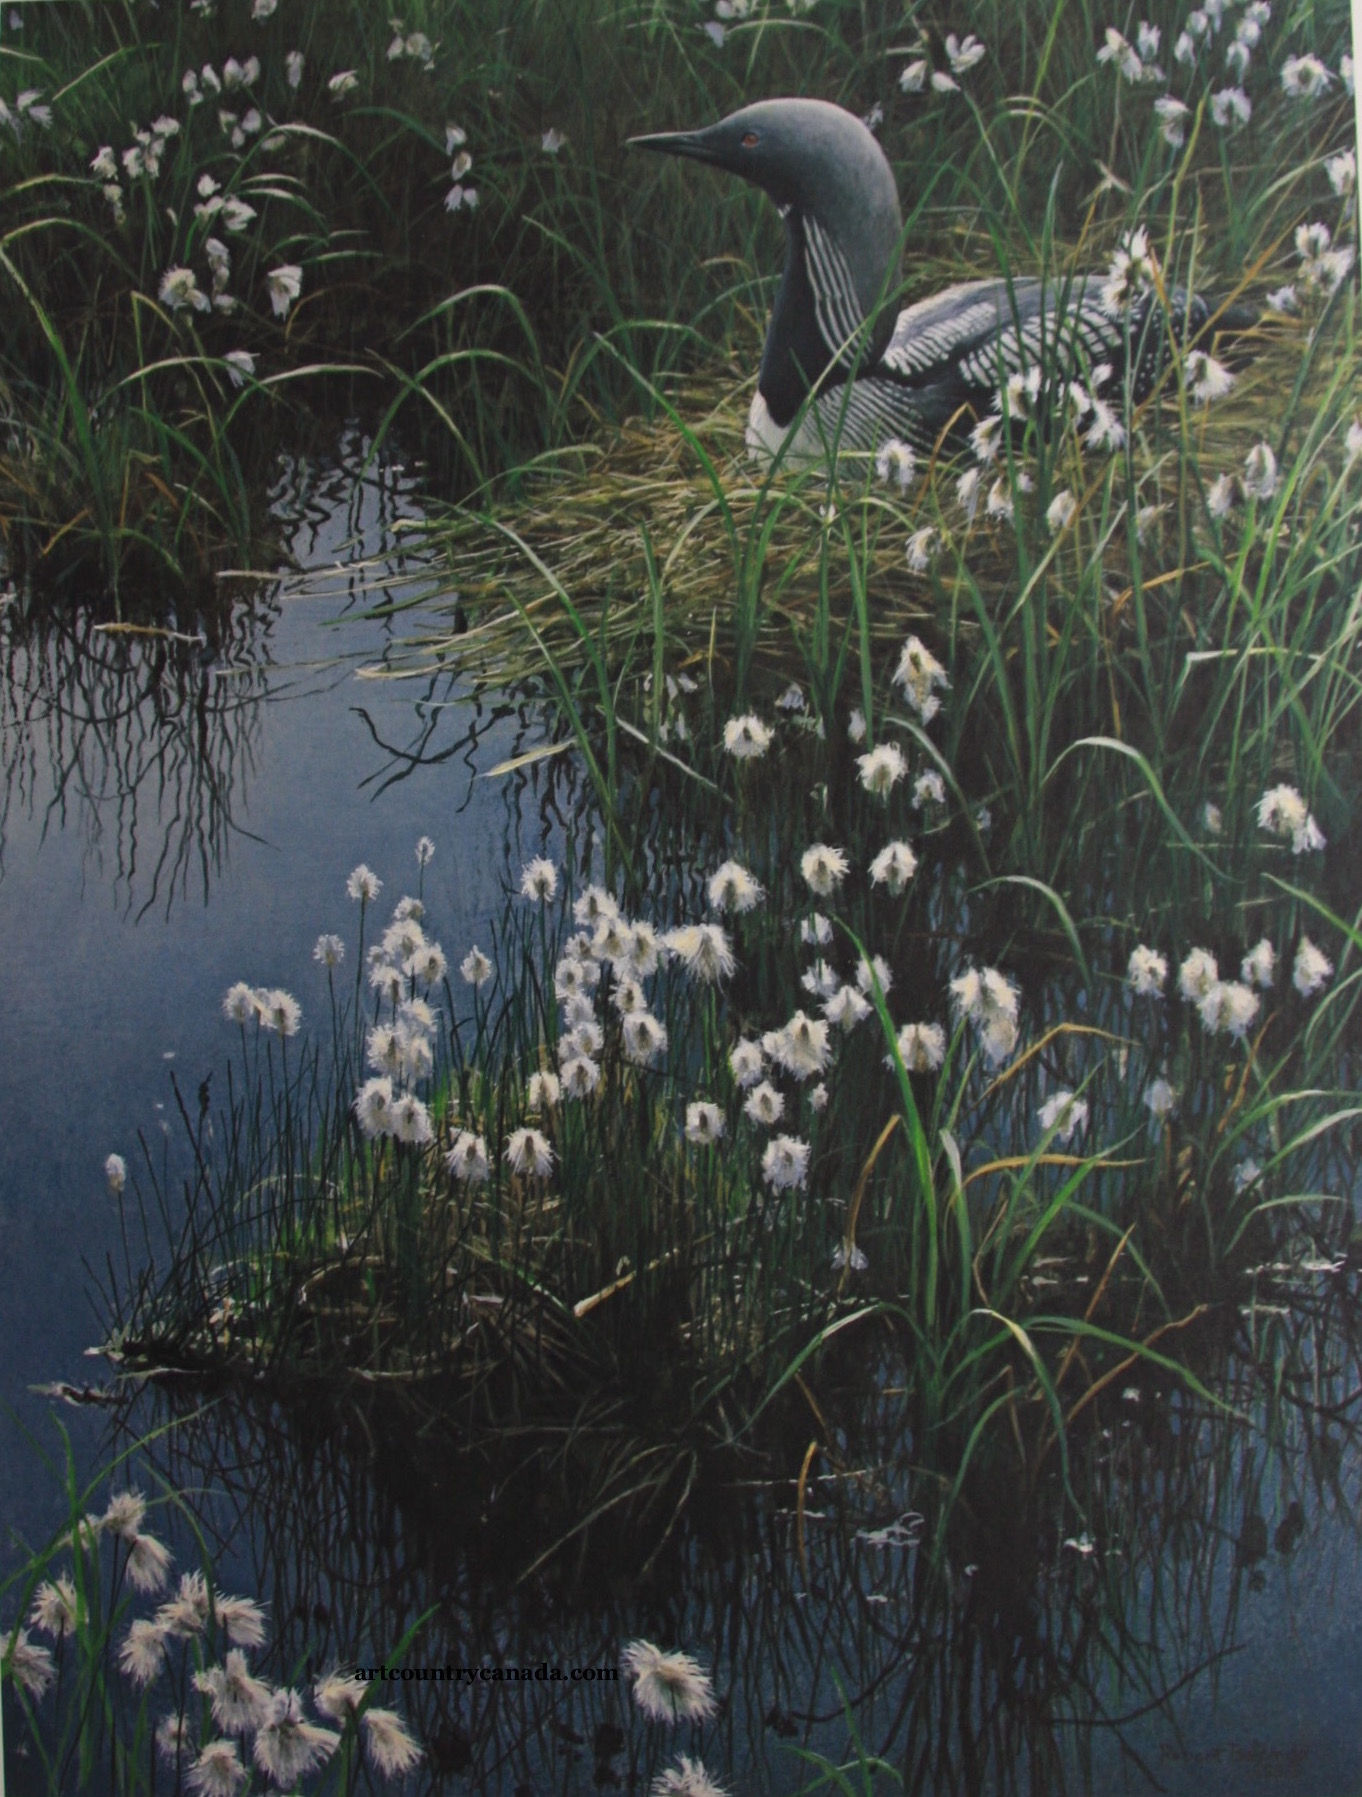 Robert Bateman Arctic Loon and Cottongrass